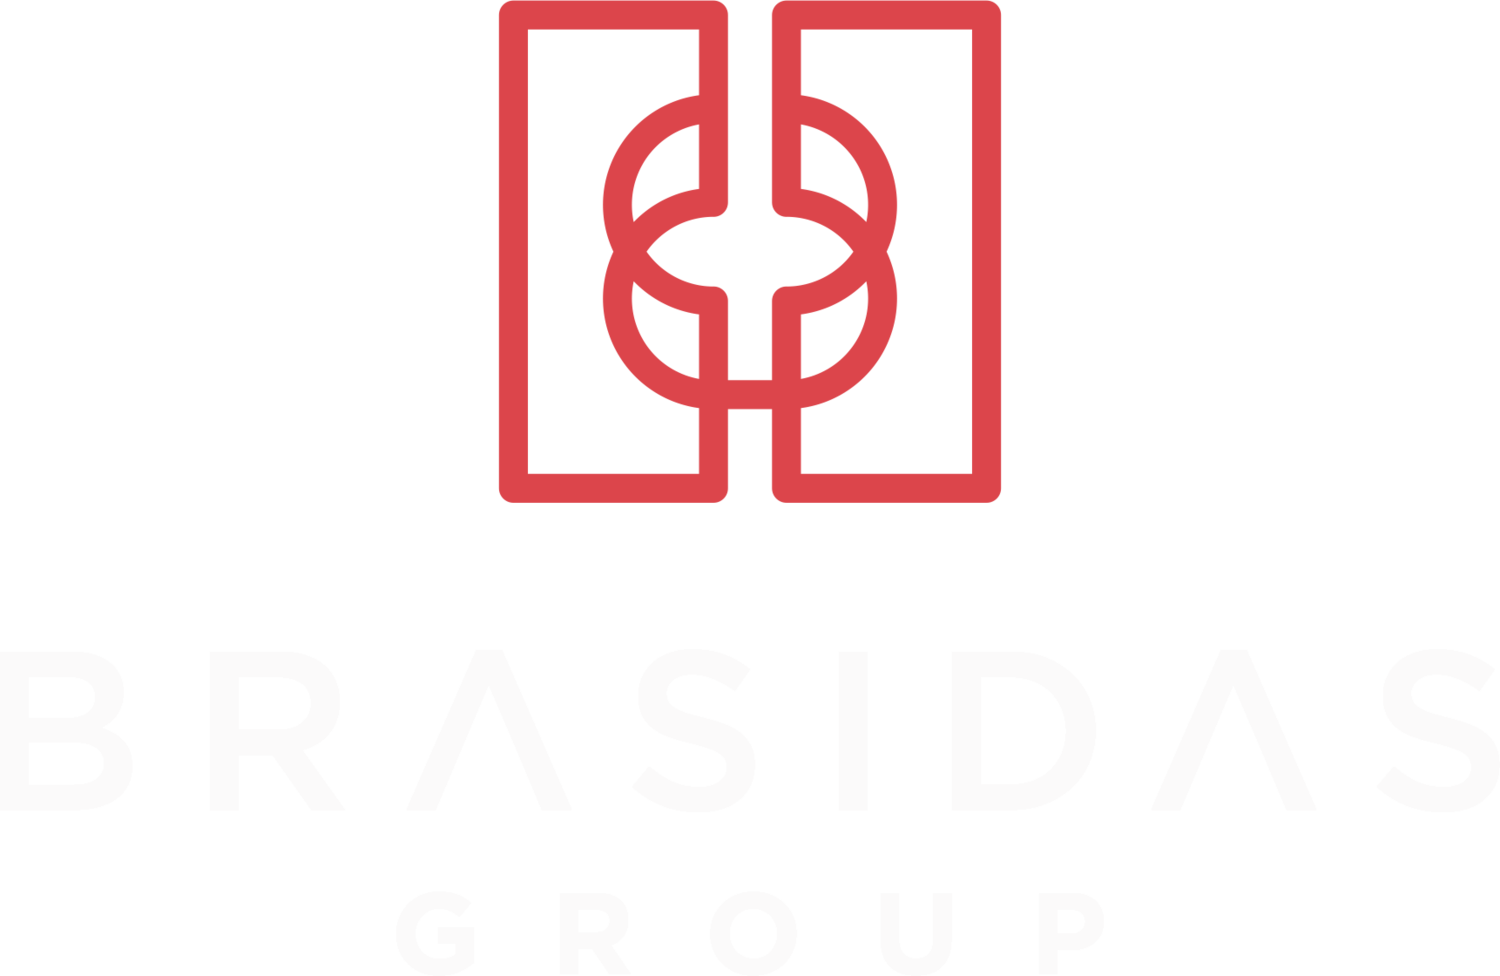 Brasidas Group